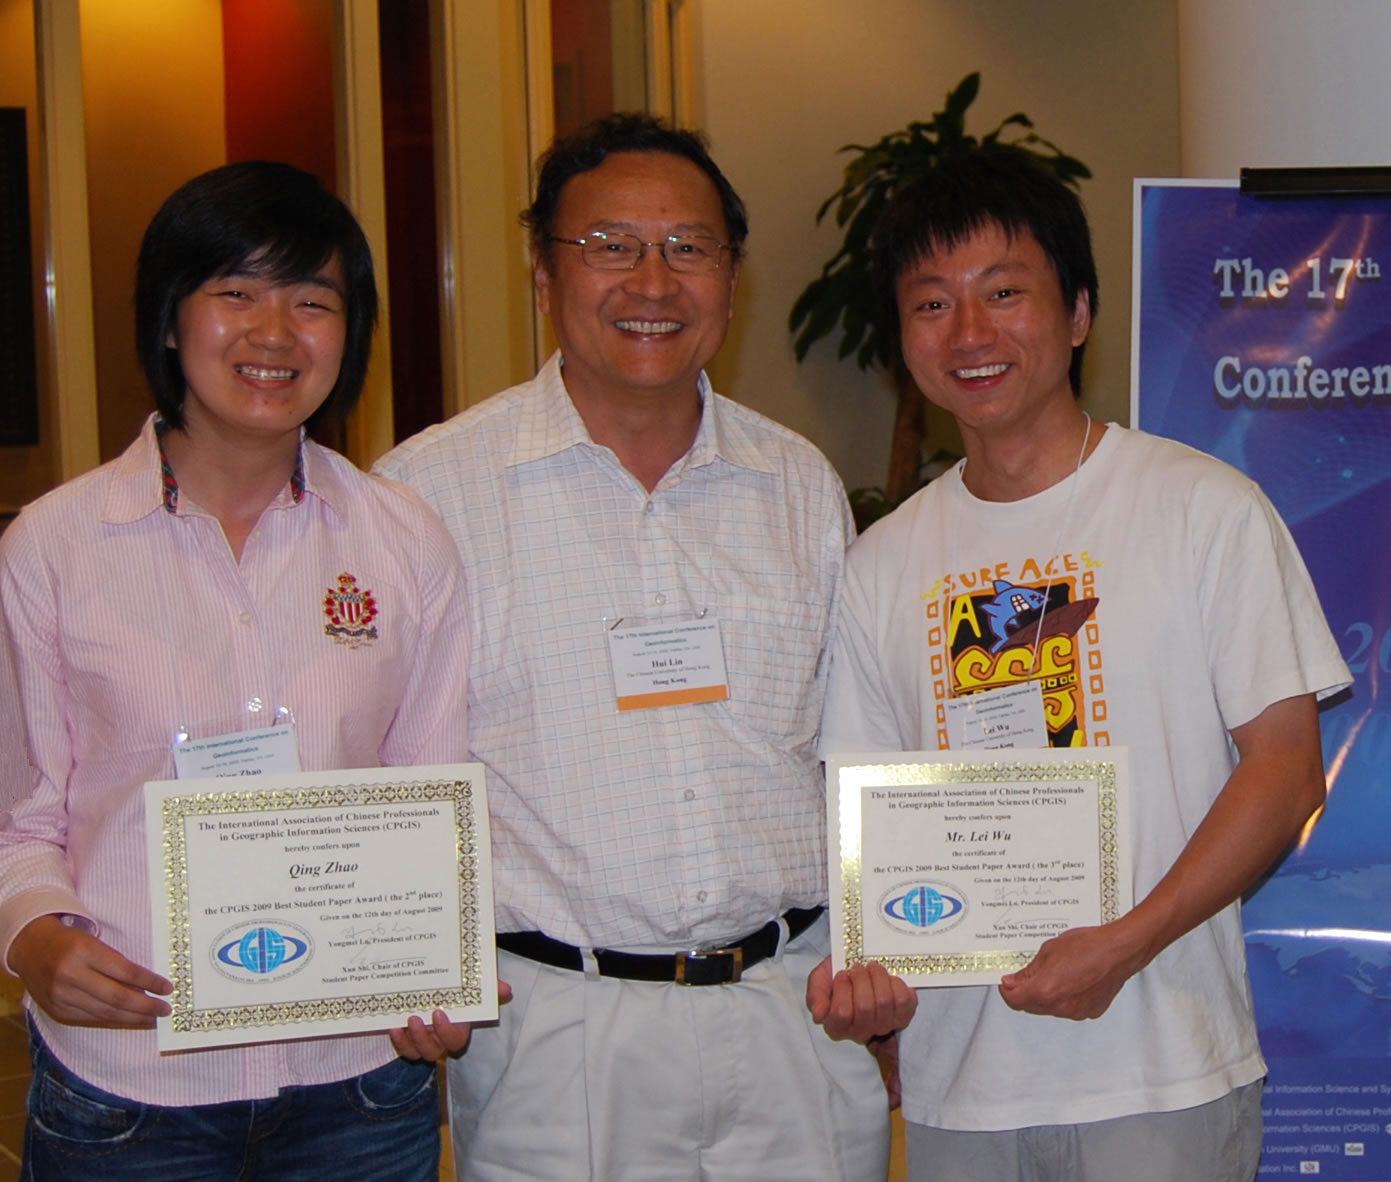 (From left) Miss Zhao Qing; Professor Lin Hui, Director, Institute of Space and Earth Information Science; and Mr. Wu Lei